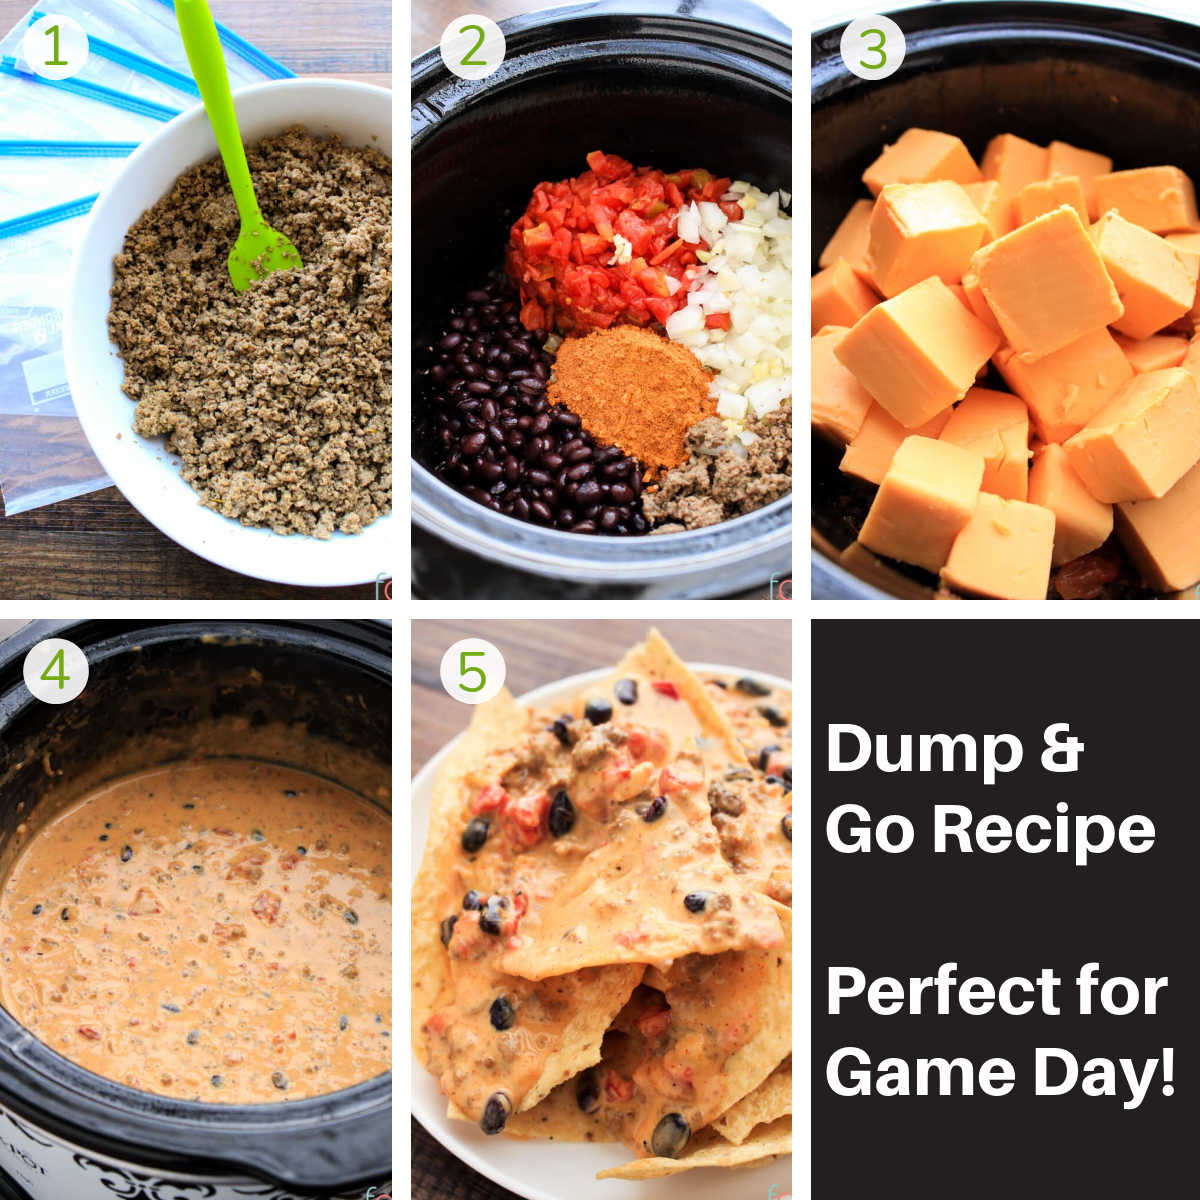 process photos showing browned ground beef, adding everything to the crock pot, melting the cheese and serving with chips.